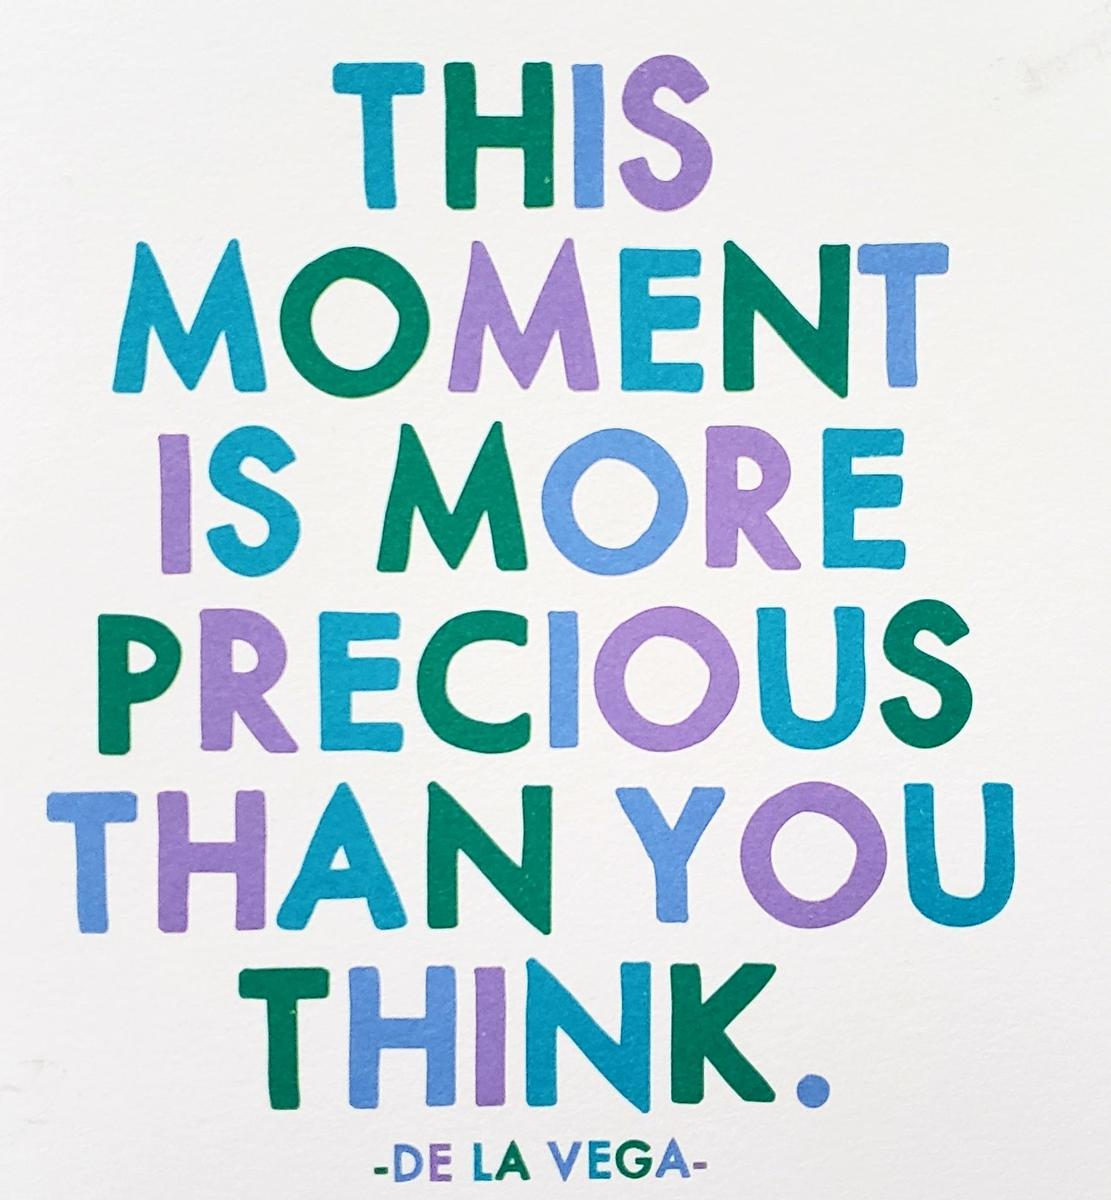 """This moment is more precious than you think."""